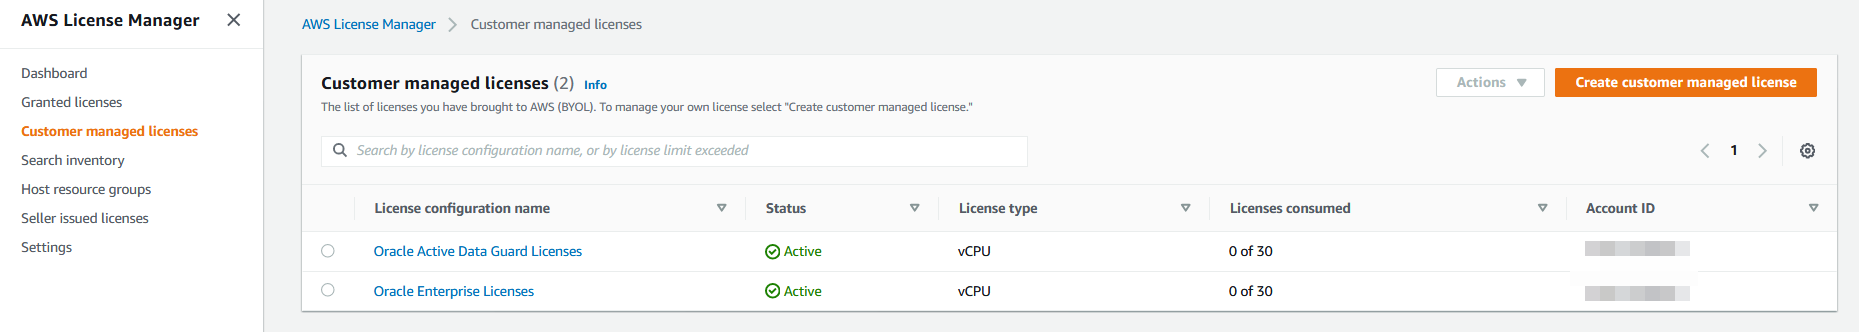 Oracle Active Data Guard Licenses appears in the Customer managed licenses list. It has a status of Active. 0 of 30 licenses are consumed.